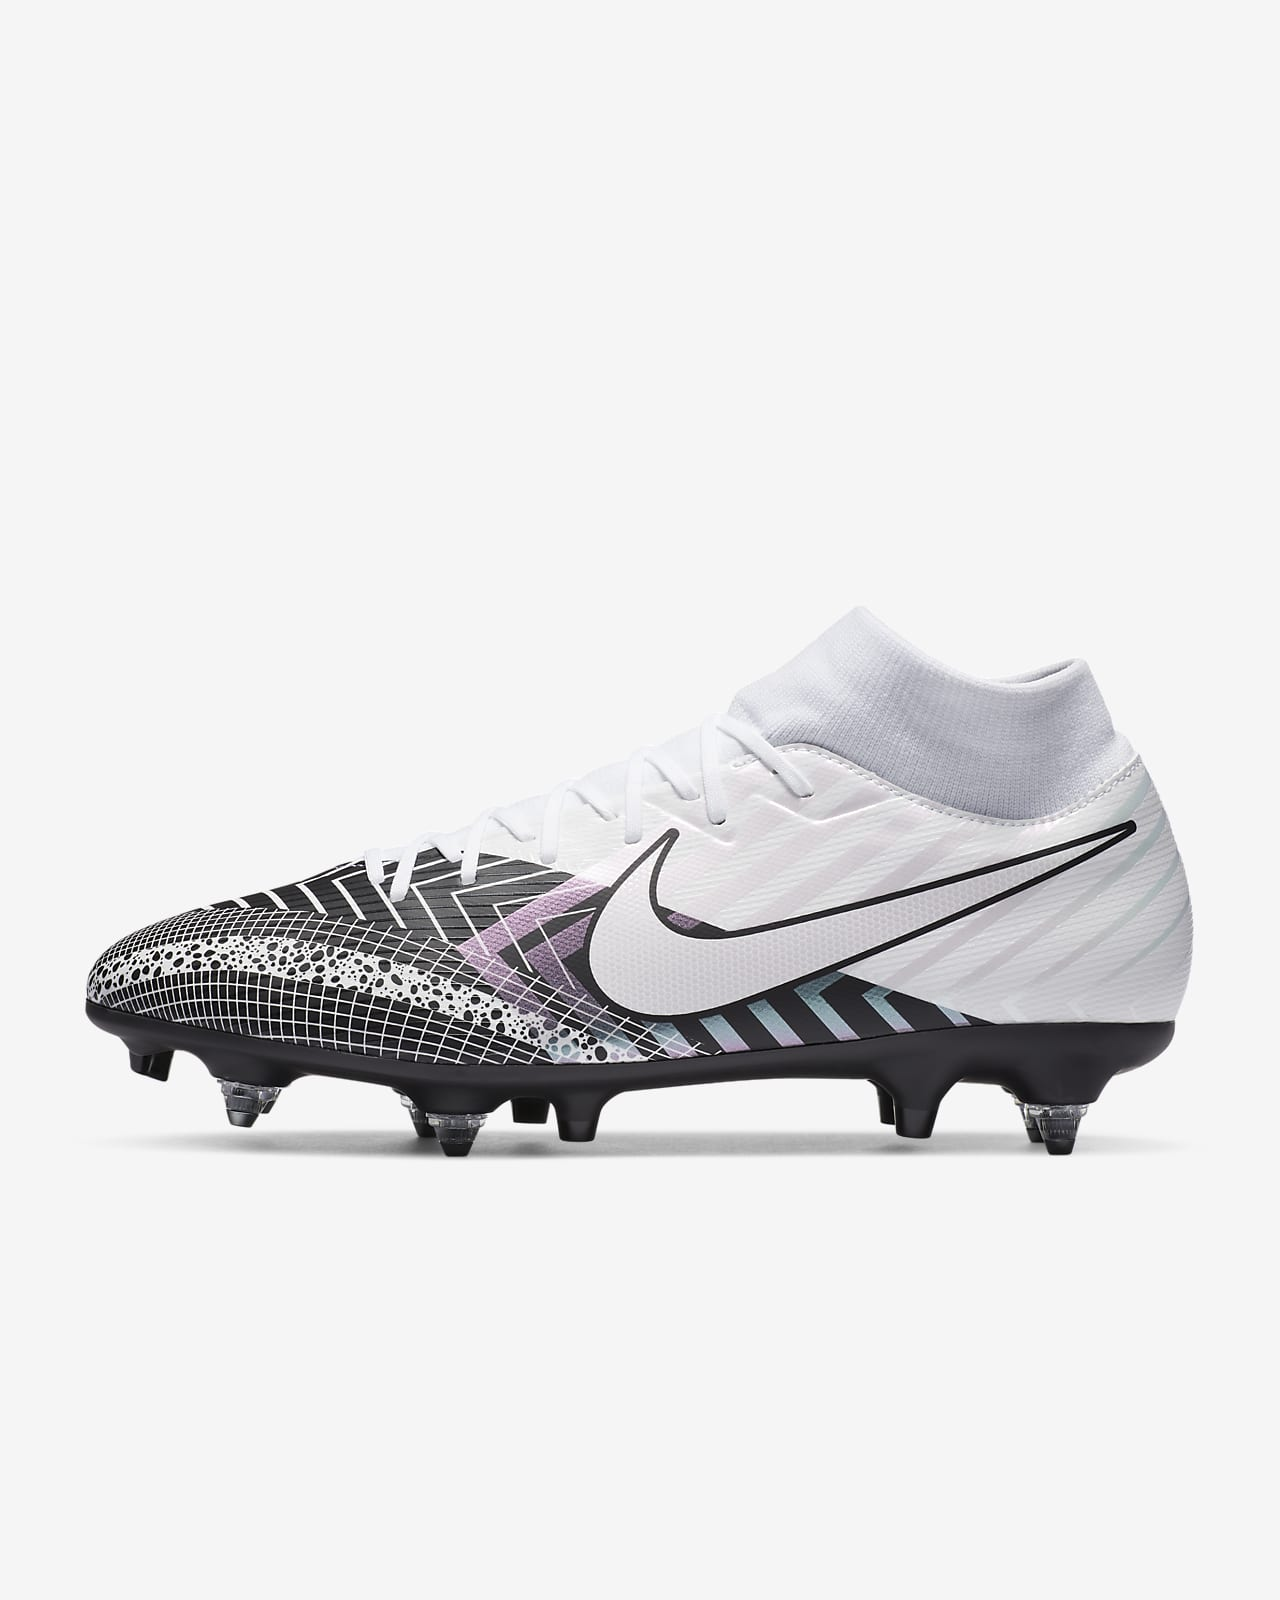 Nike Mercurial Superfly 7 Academy MDS SG-PRO Anti-Clog Traction Botes de futbol per a terreny tou